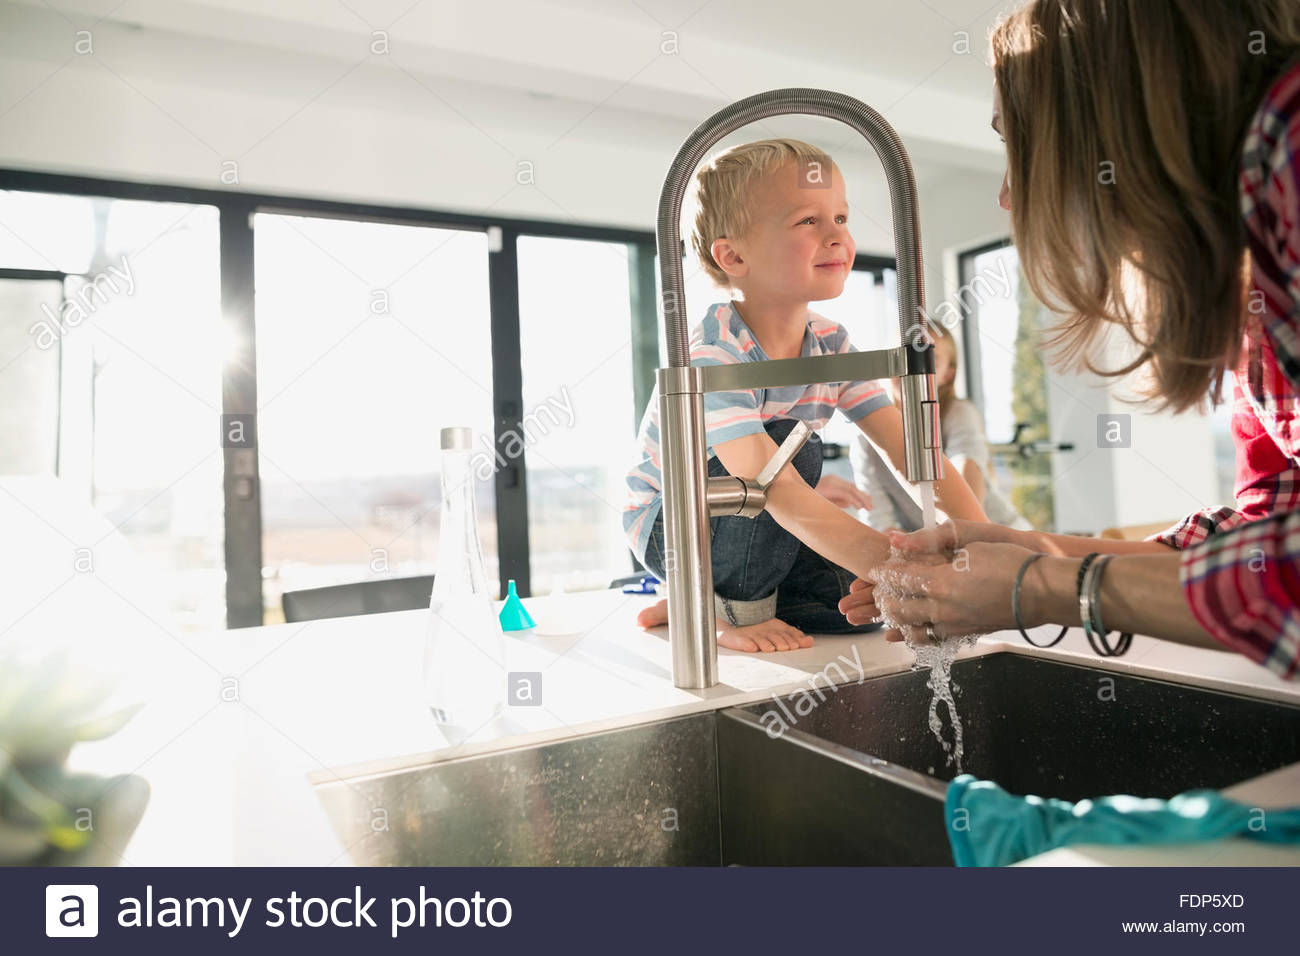 mother washing hands in kitchen sink - Stock Image